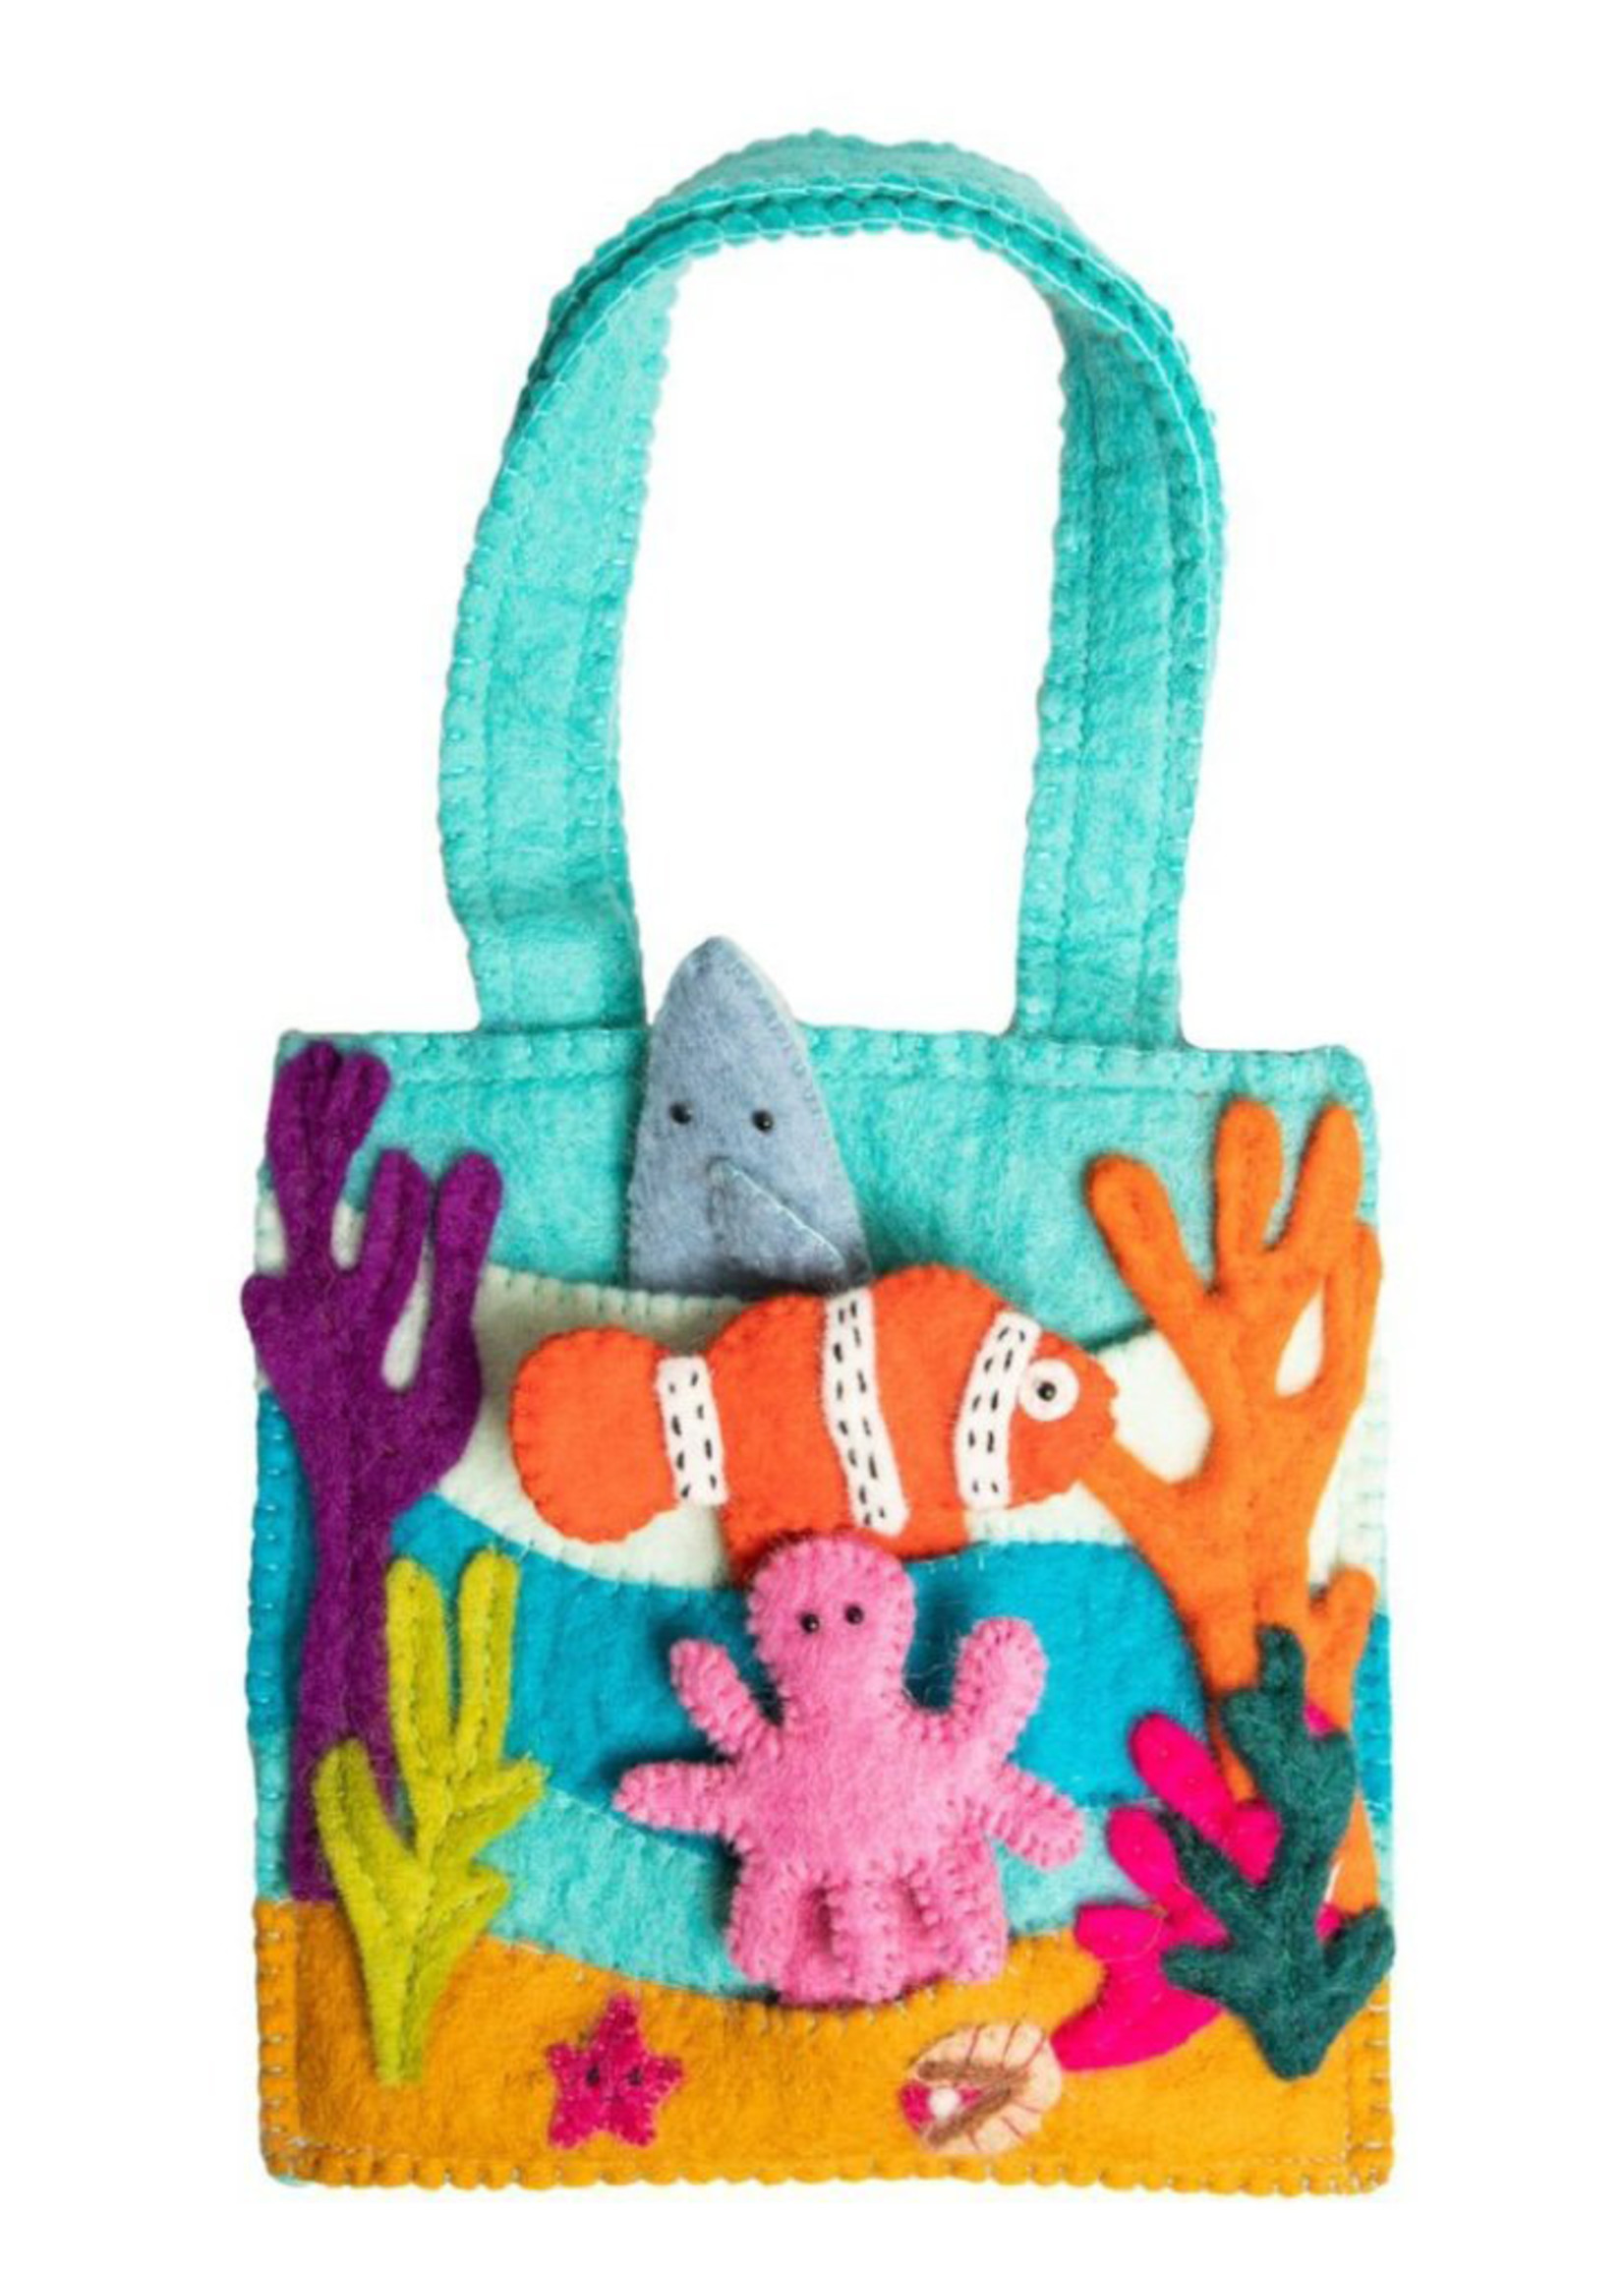 Global Goods Partners Felt Under the Sea Puppet Bag